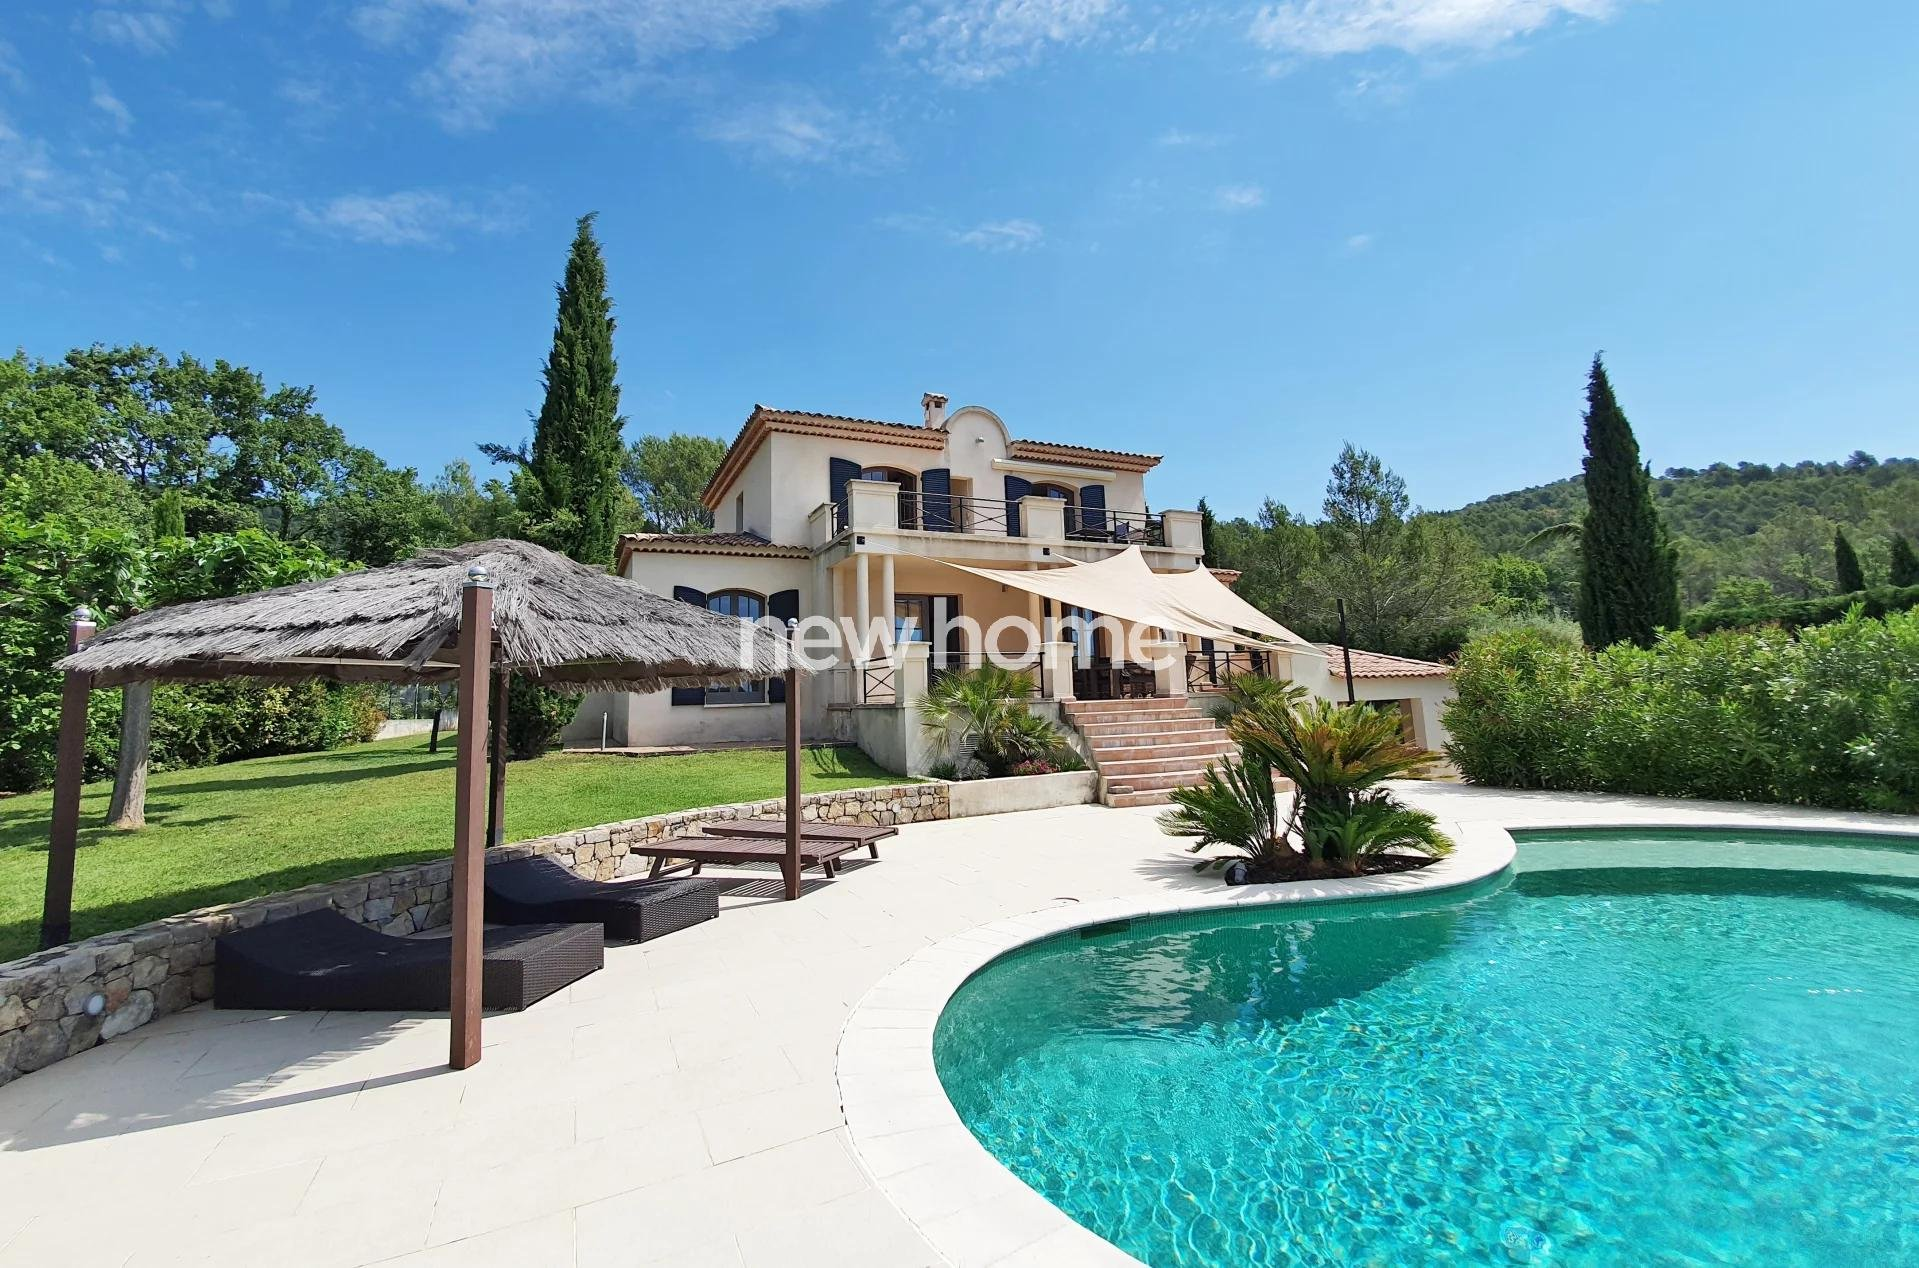 3D VIRTUAL VISIT ON OUR WEBSITE - Seillans: property with pool